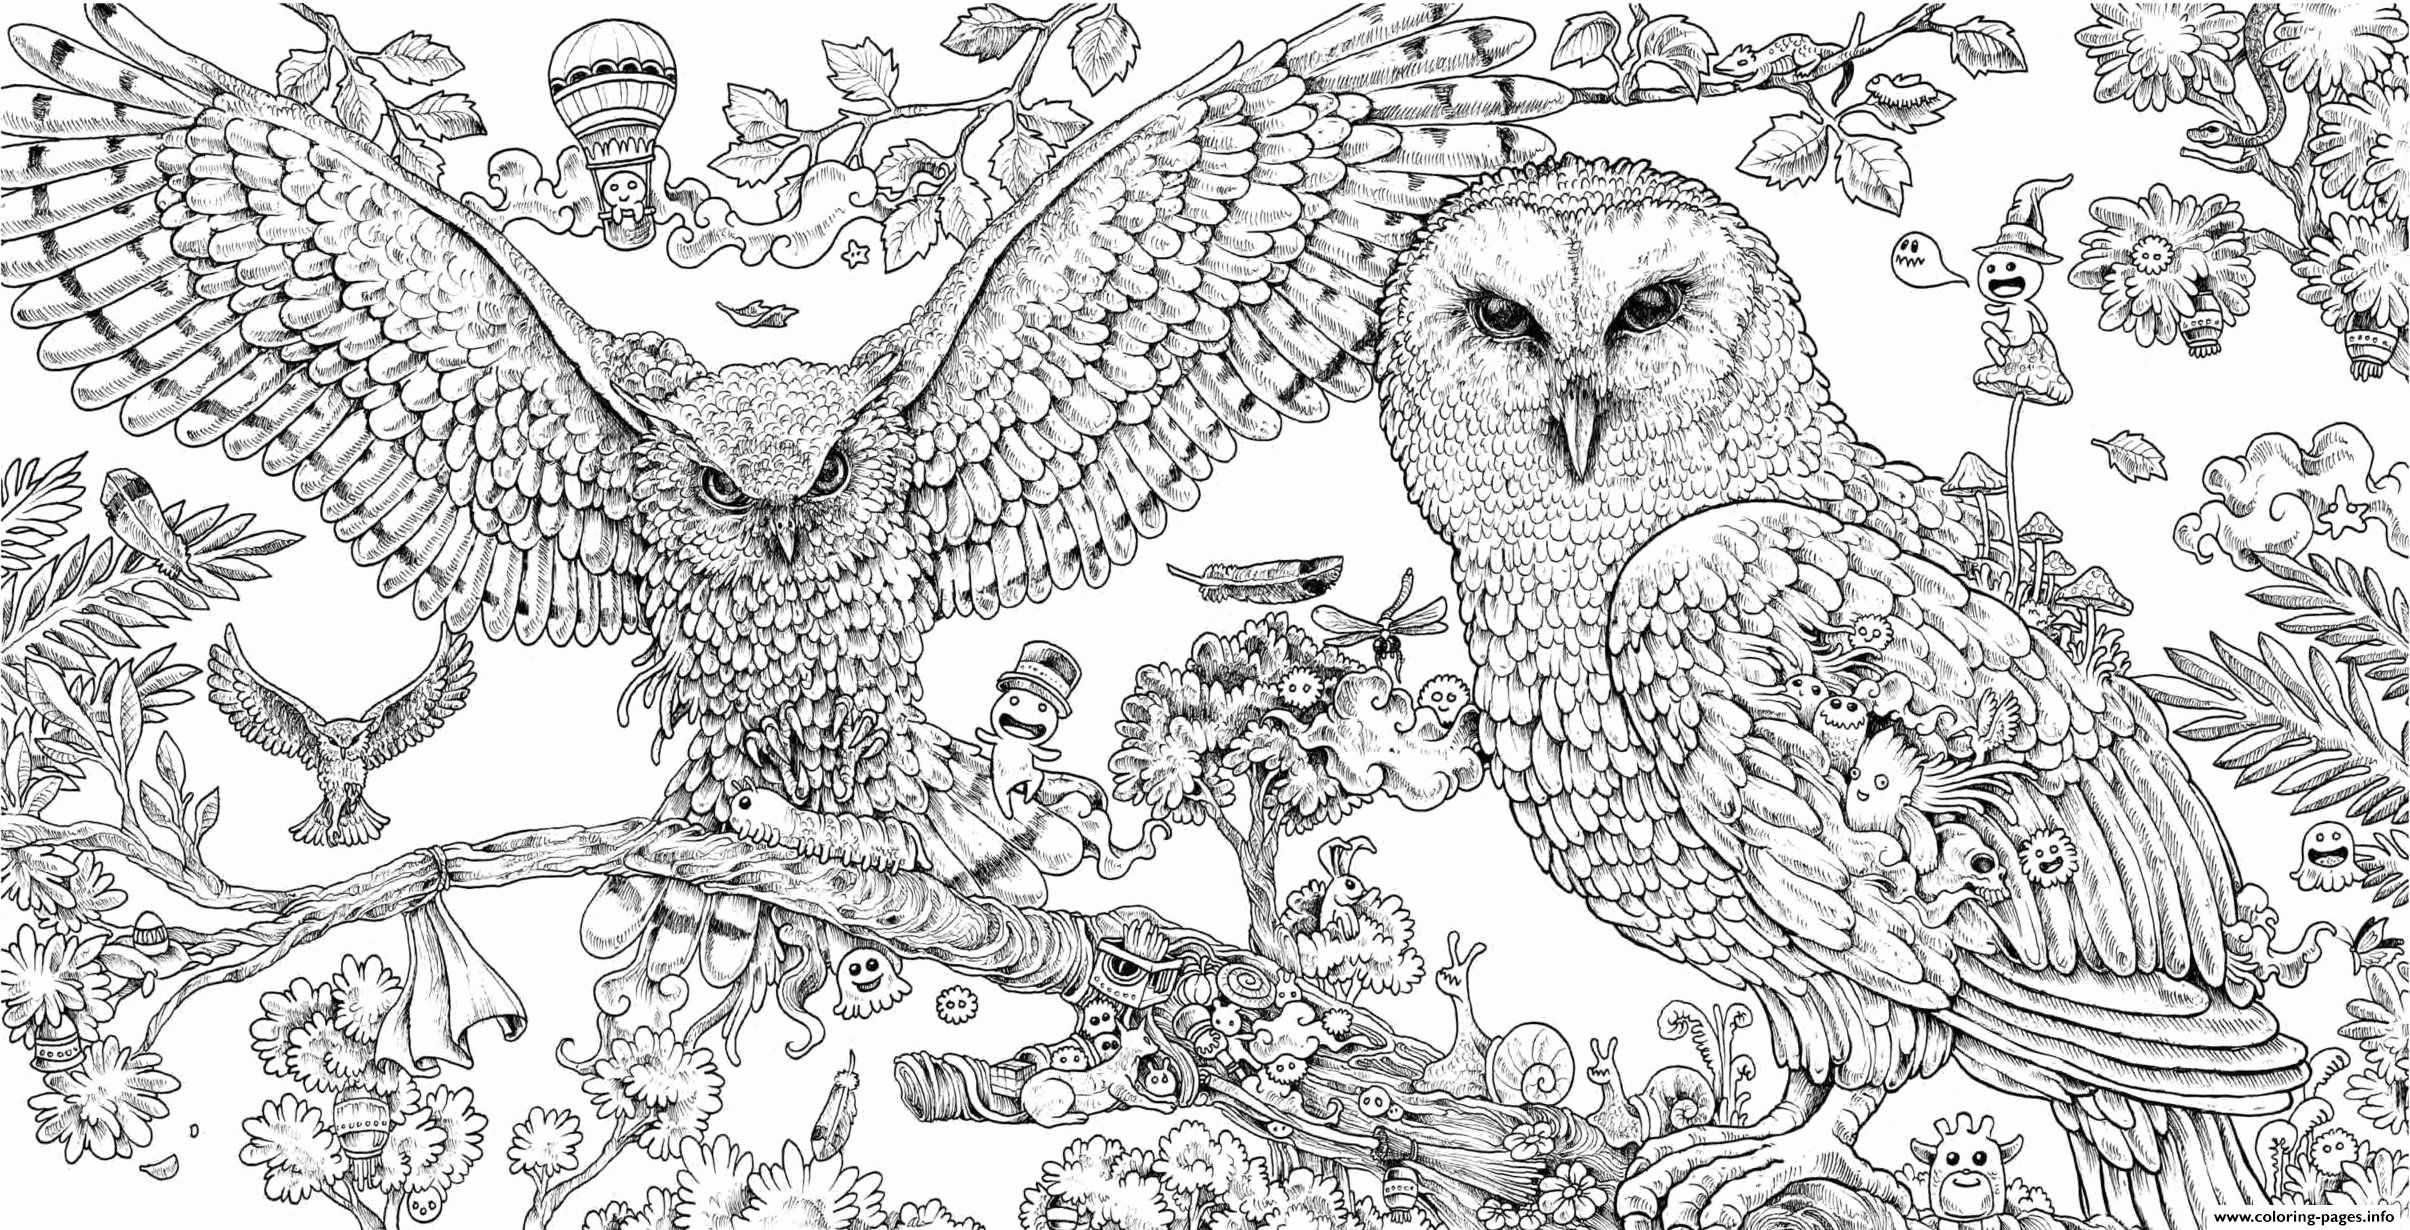 Animal Coloring Sheets Hard Lovely Coloring Pages Animals Hard From The Thousand Images In 2020 Animal Coloring Books Horse Coloring Pages Bird Coloring Pages